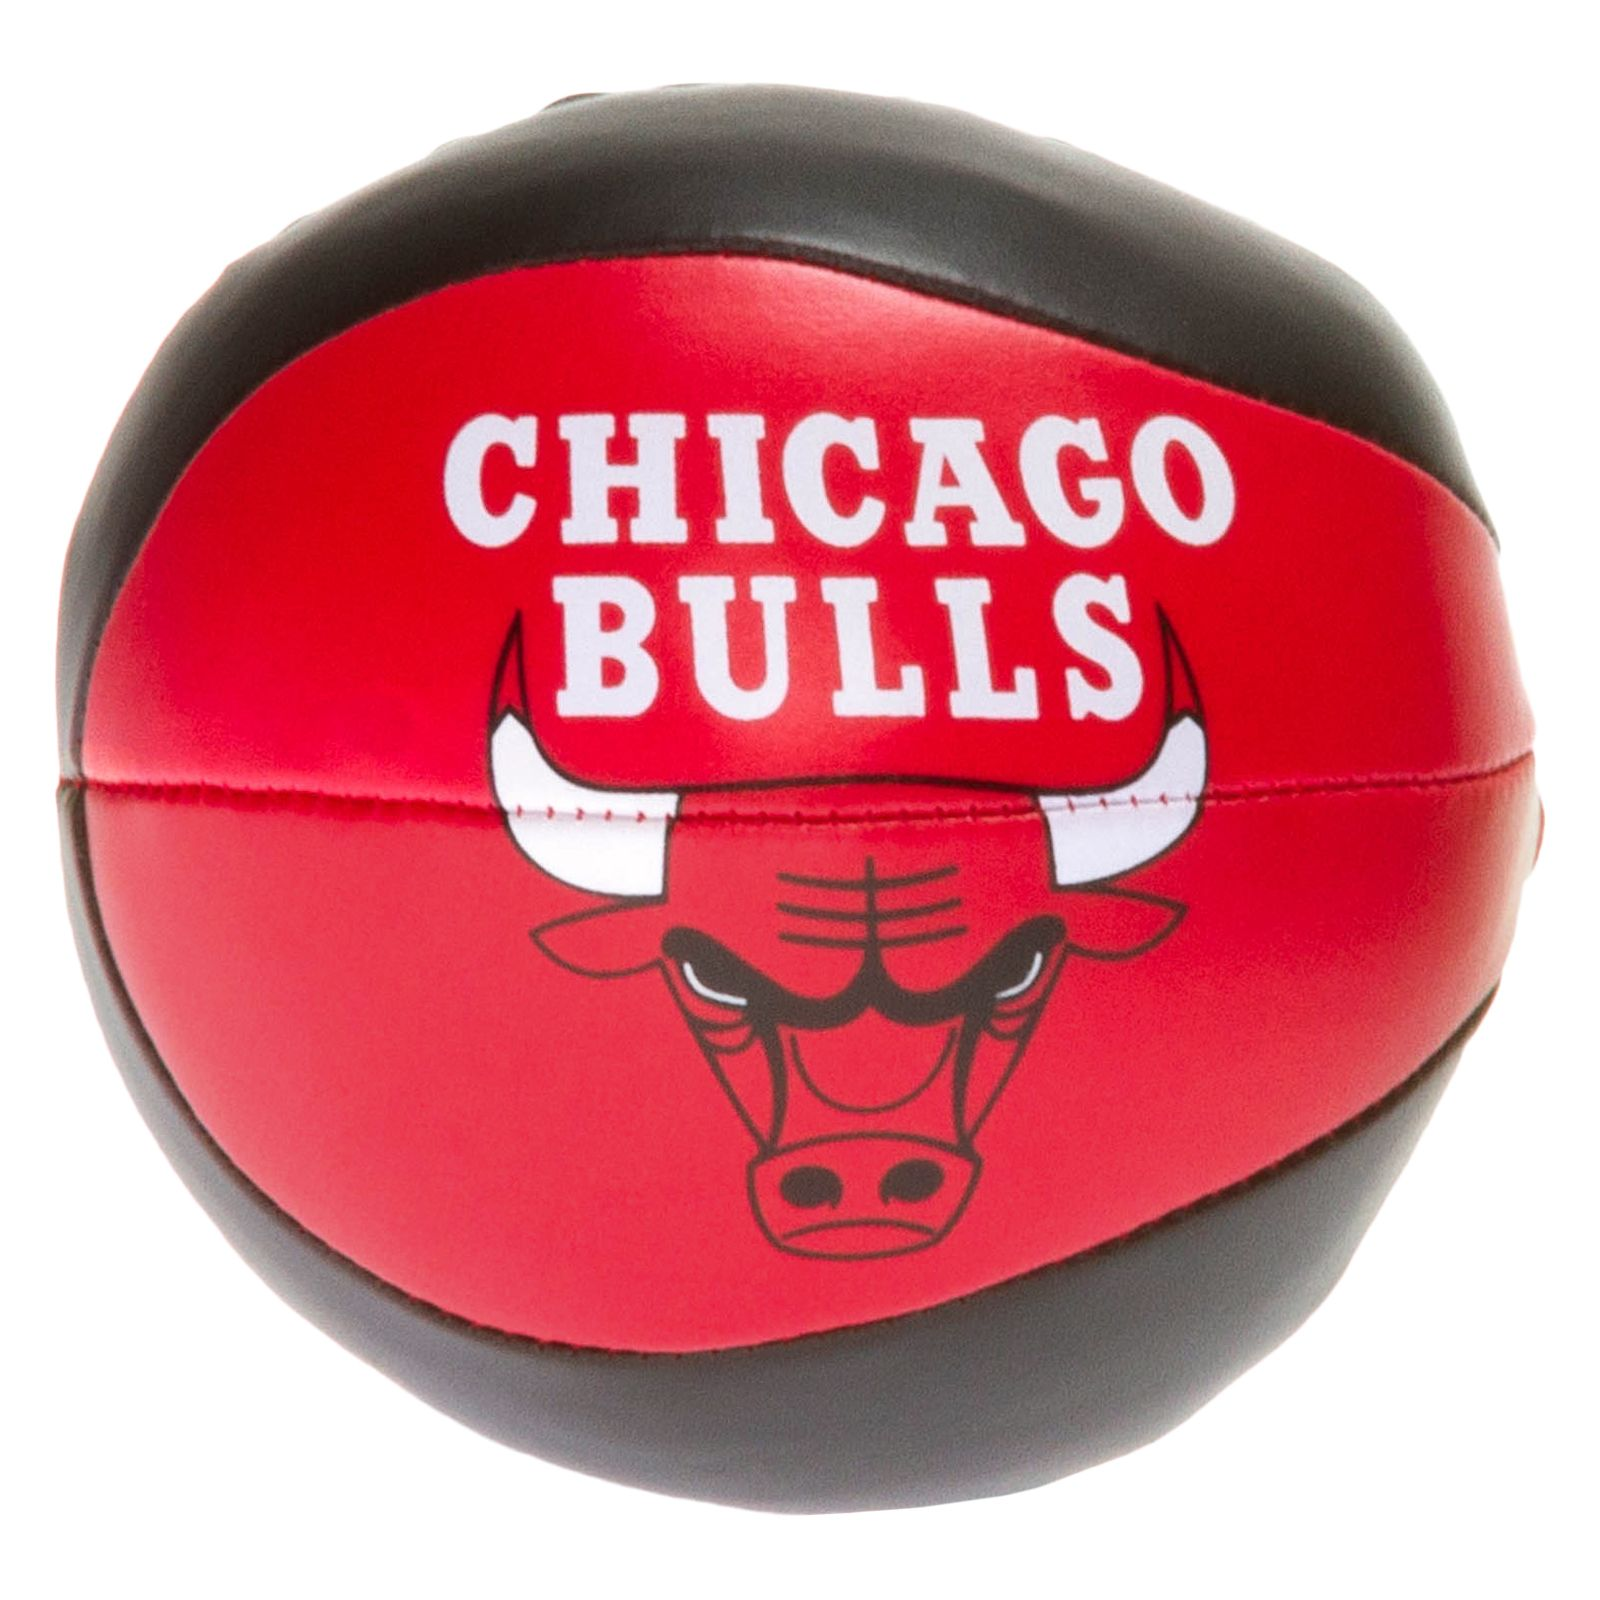 "Chicago Bulls 4"" Softee Basketball by Jarden Chicago"